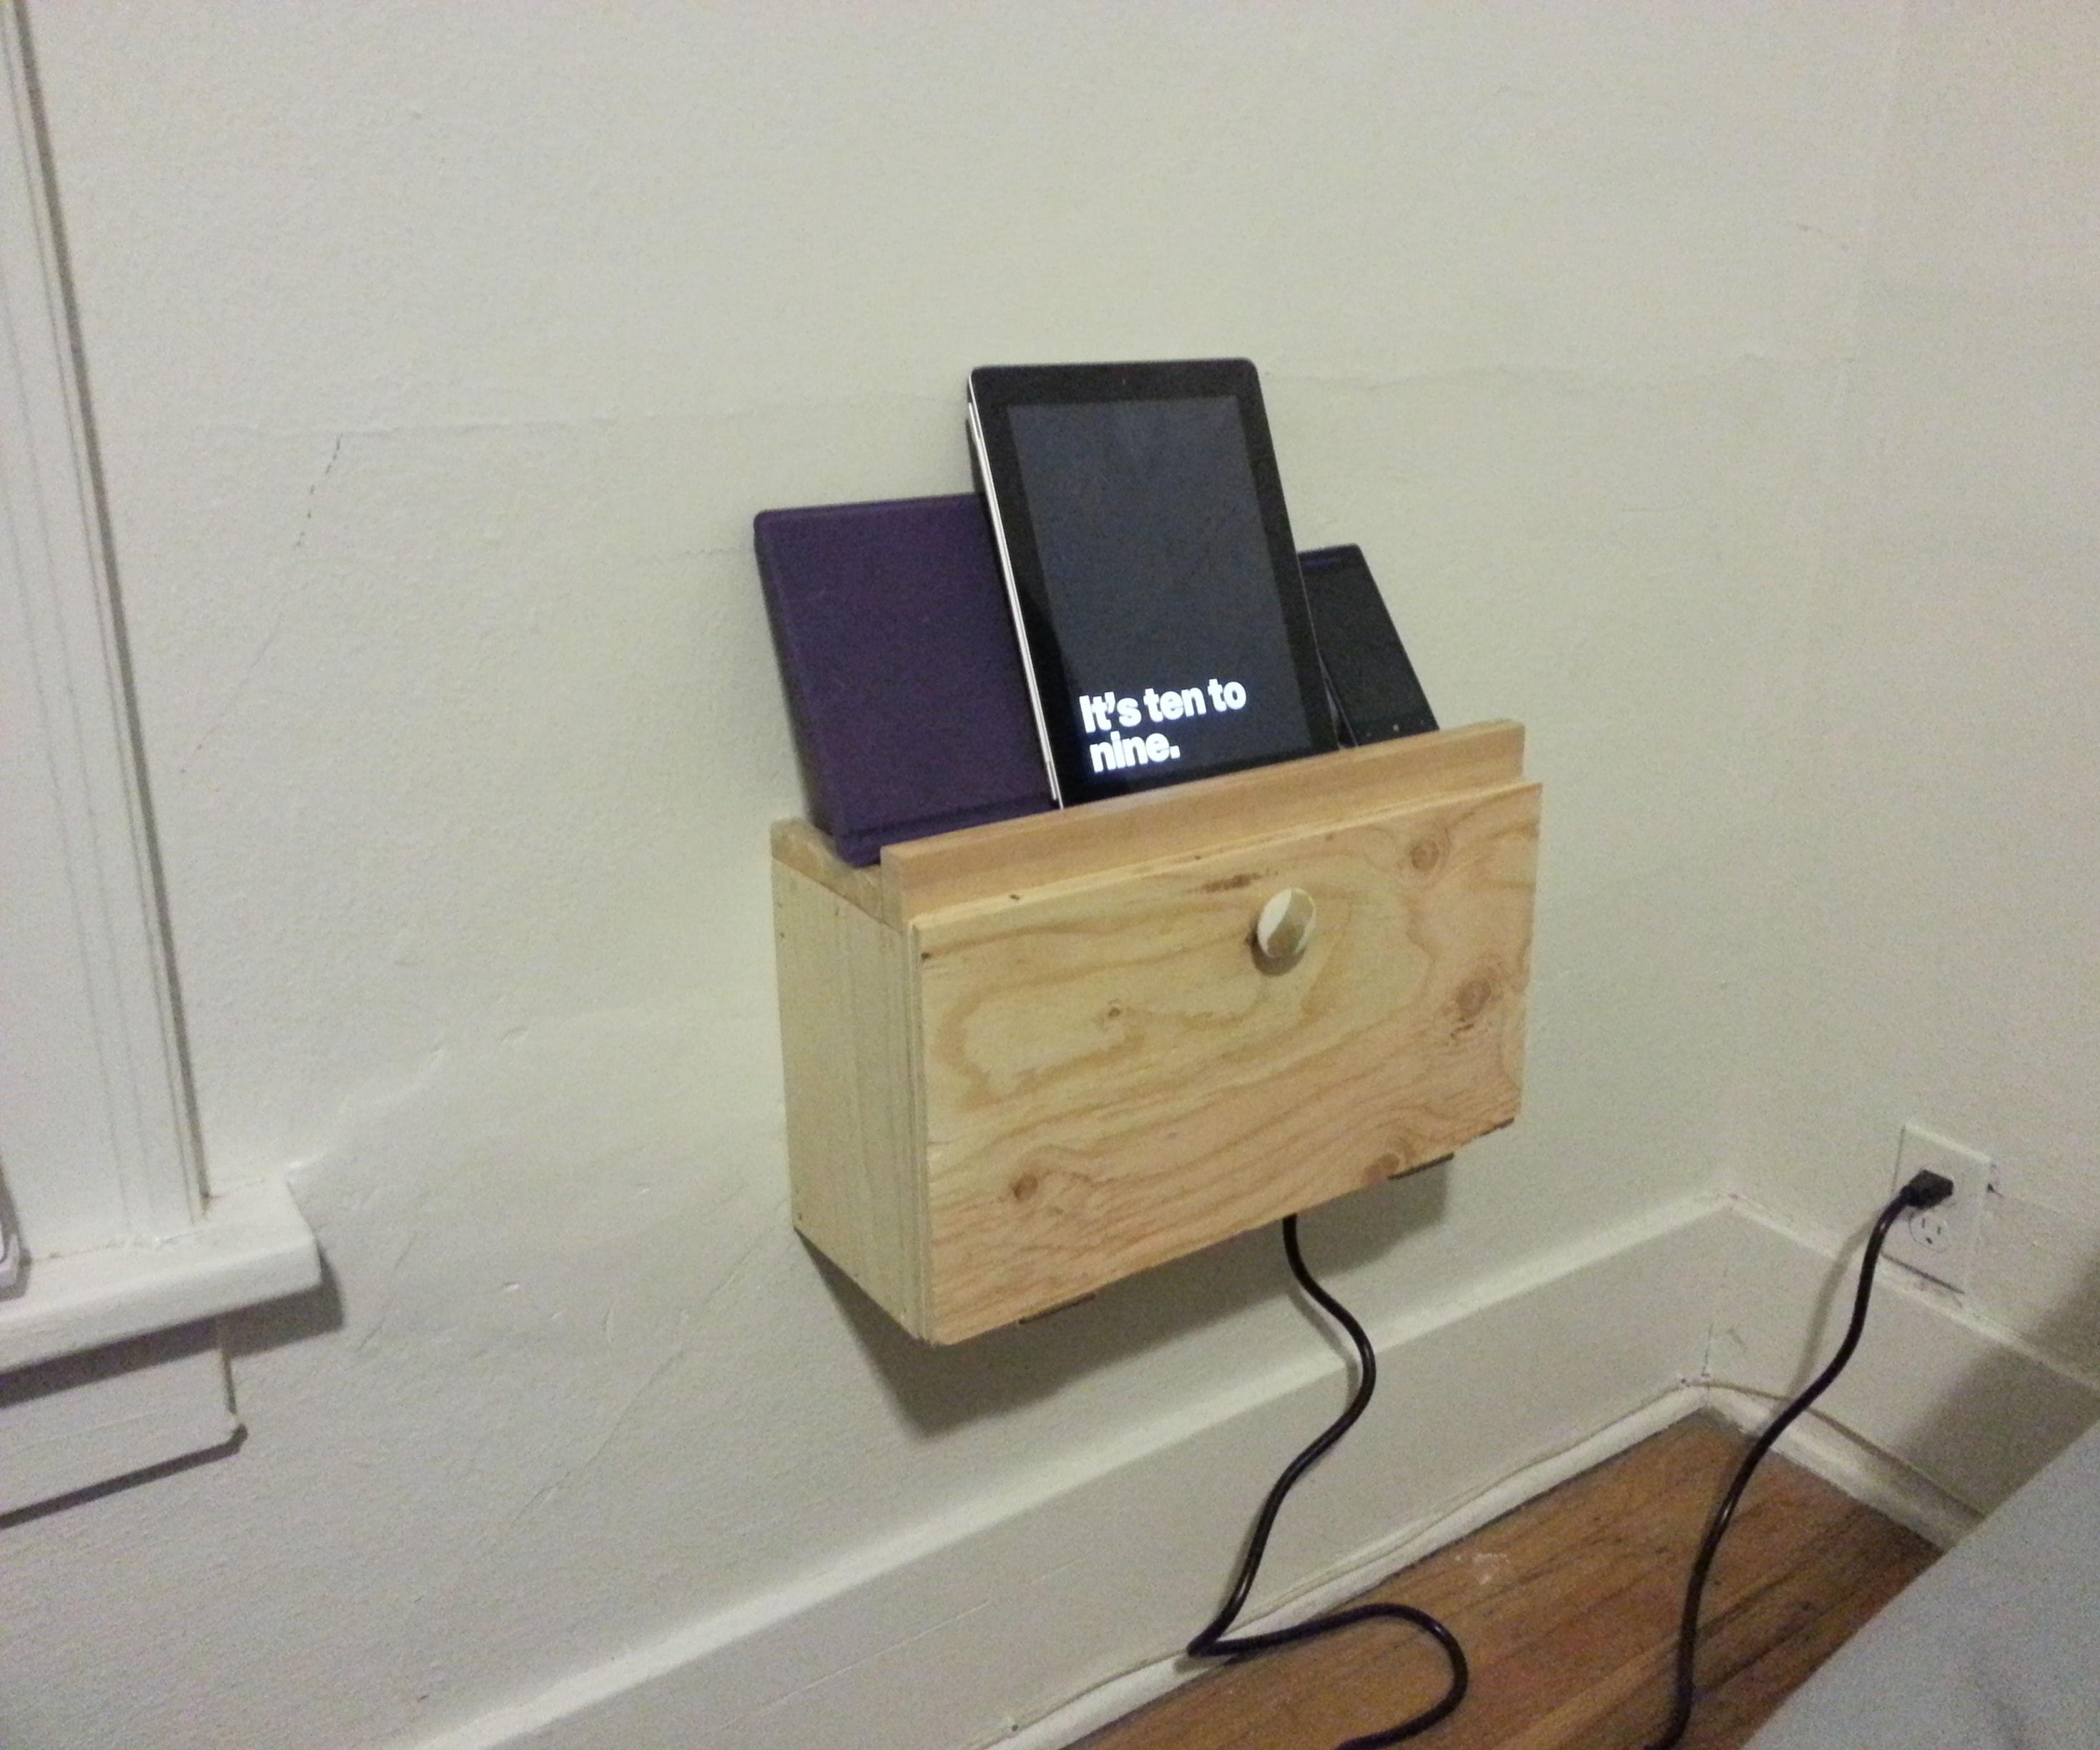 An ugly but easy wall mounted charging docking station